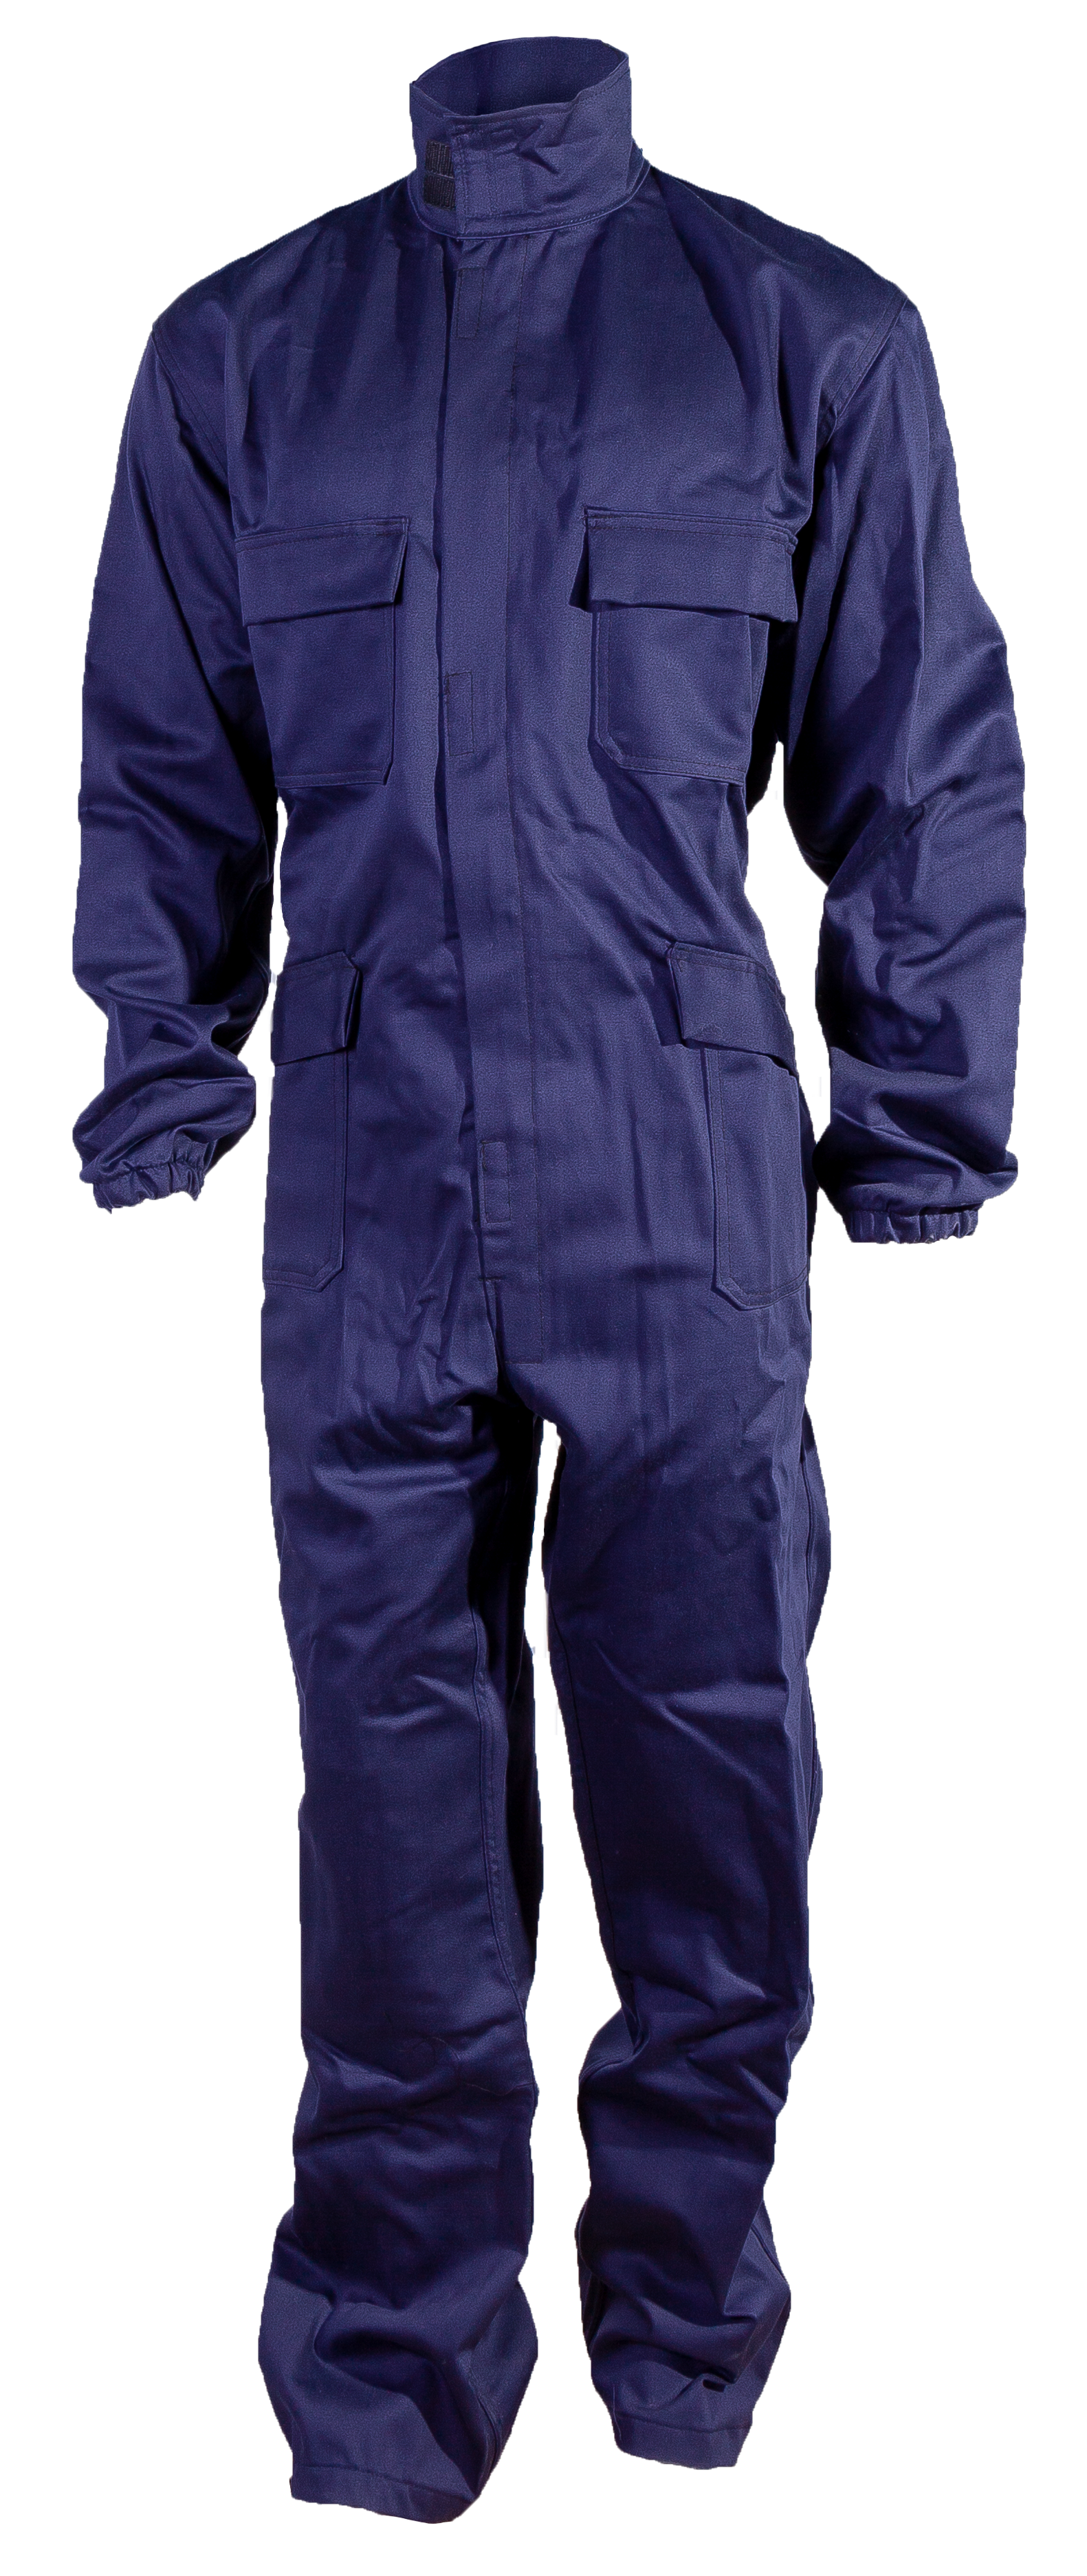 Probes - FR Cotton coverall Image